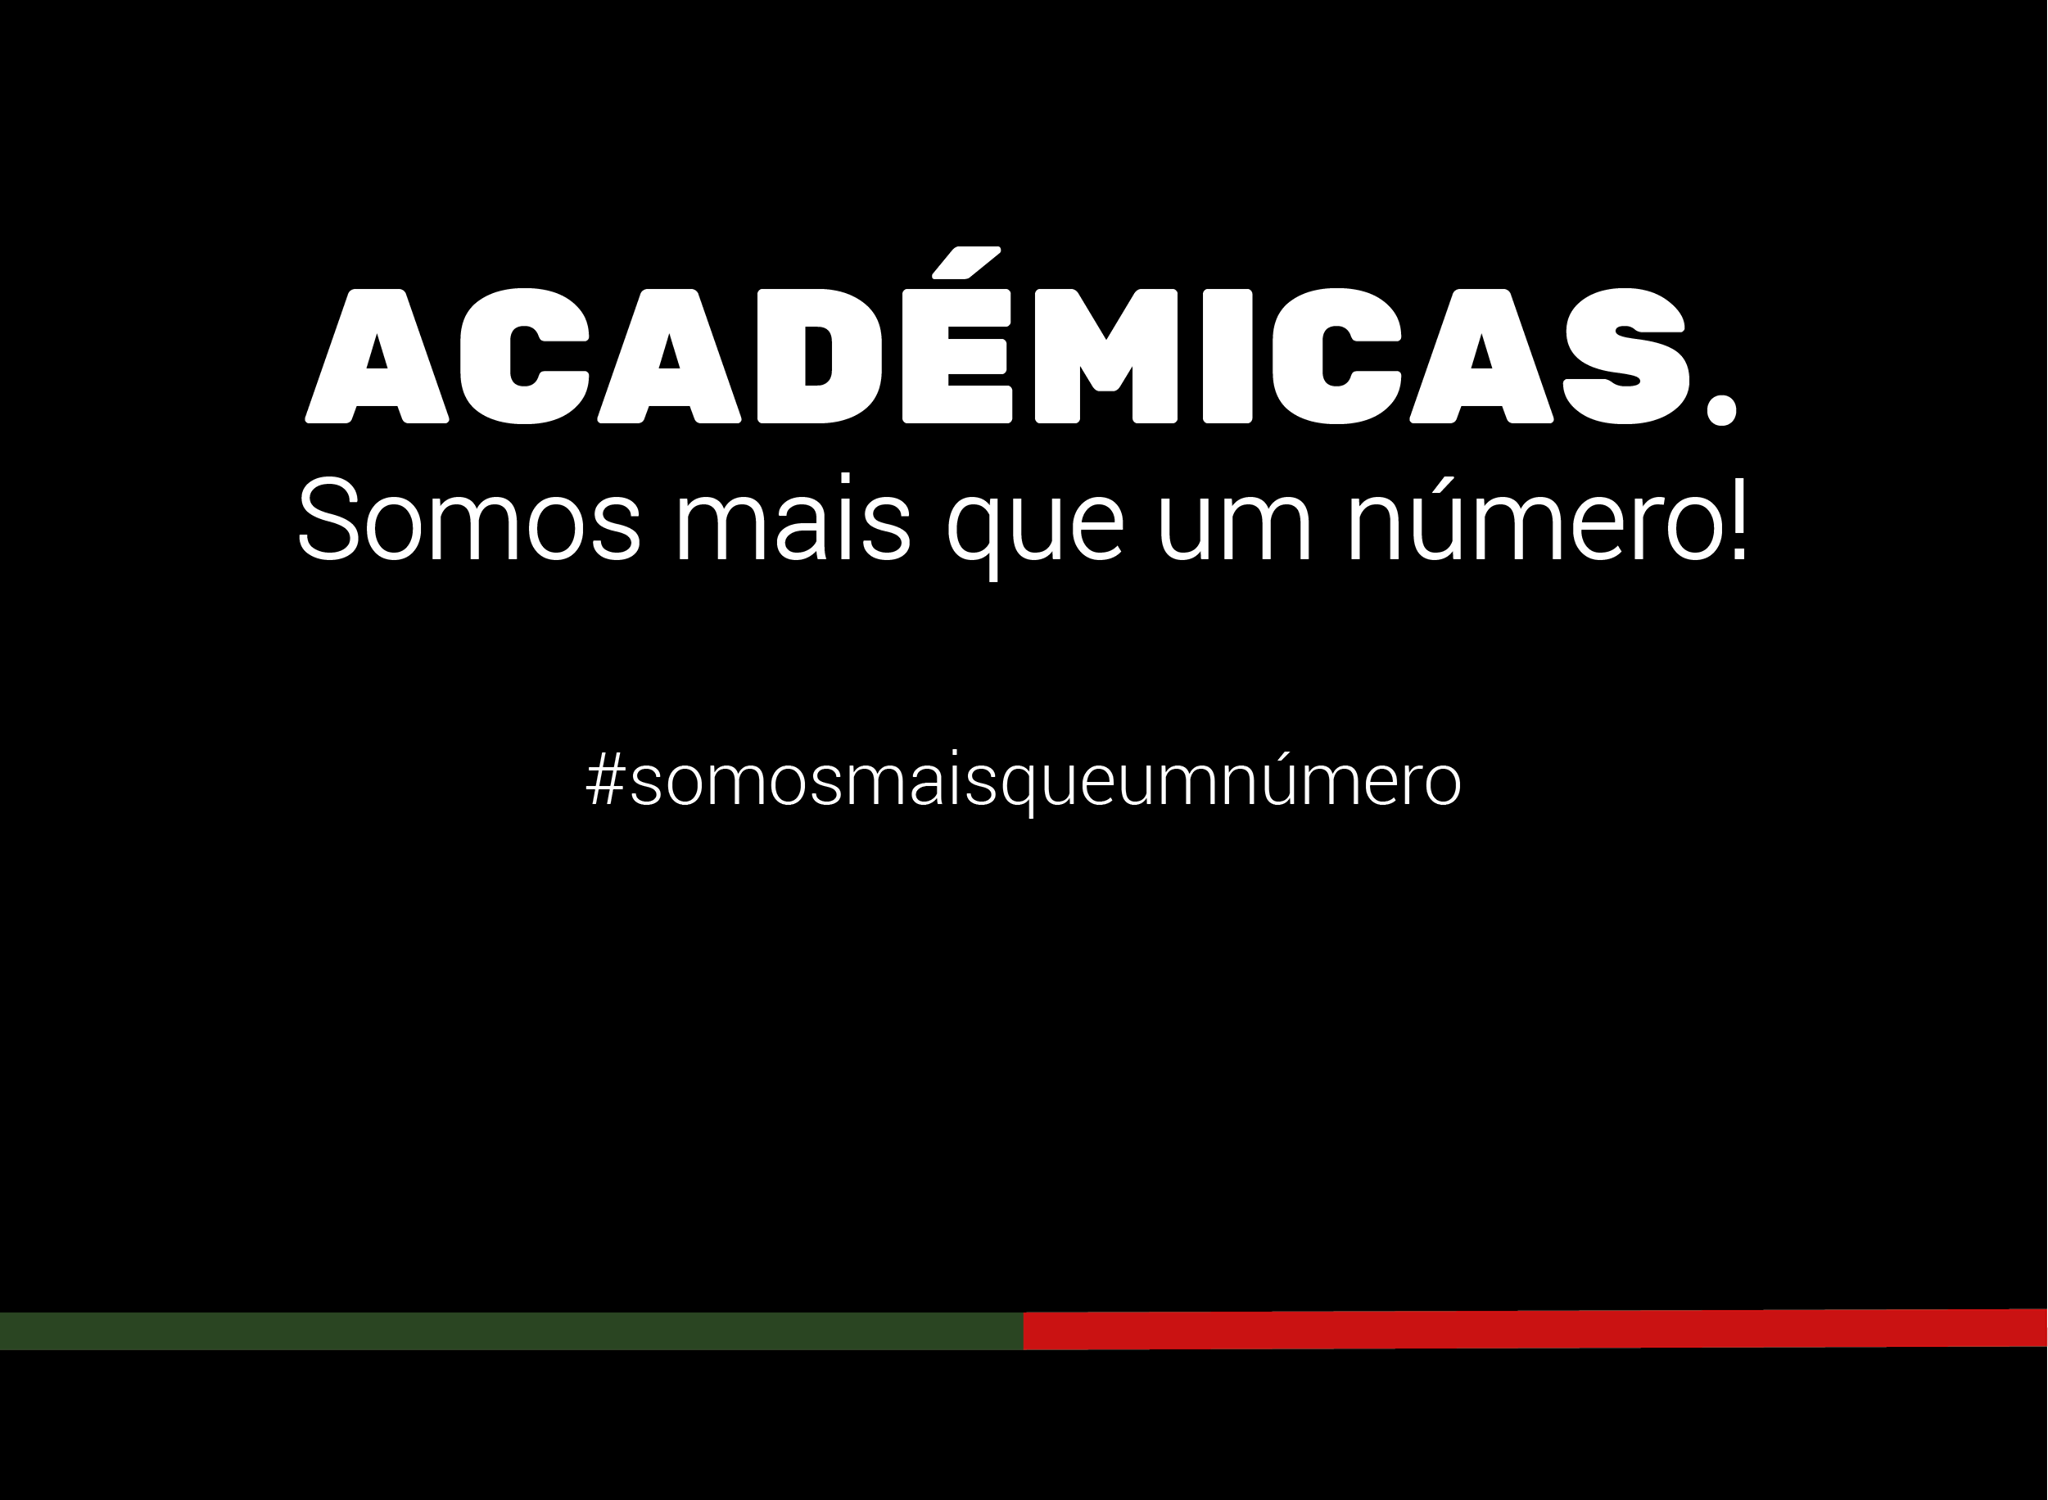 Académicas reivindica aumento do financiamento para o Ensino Superior no OE 2021